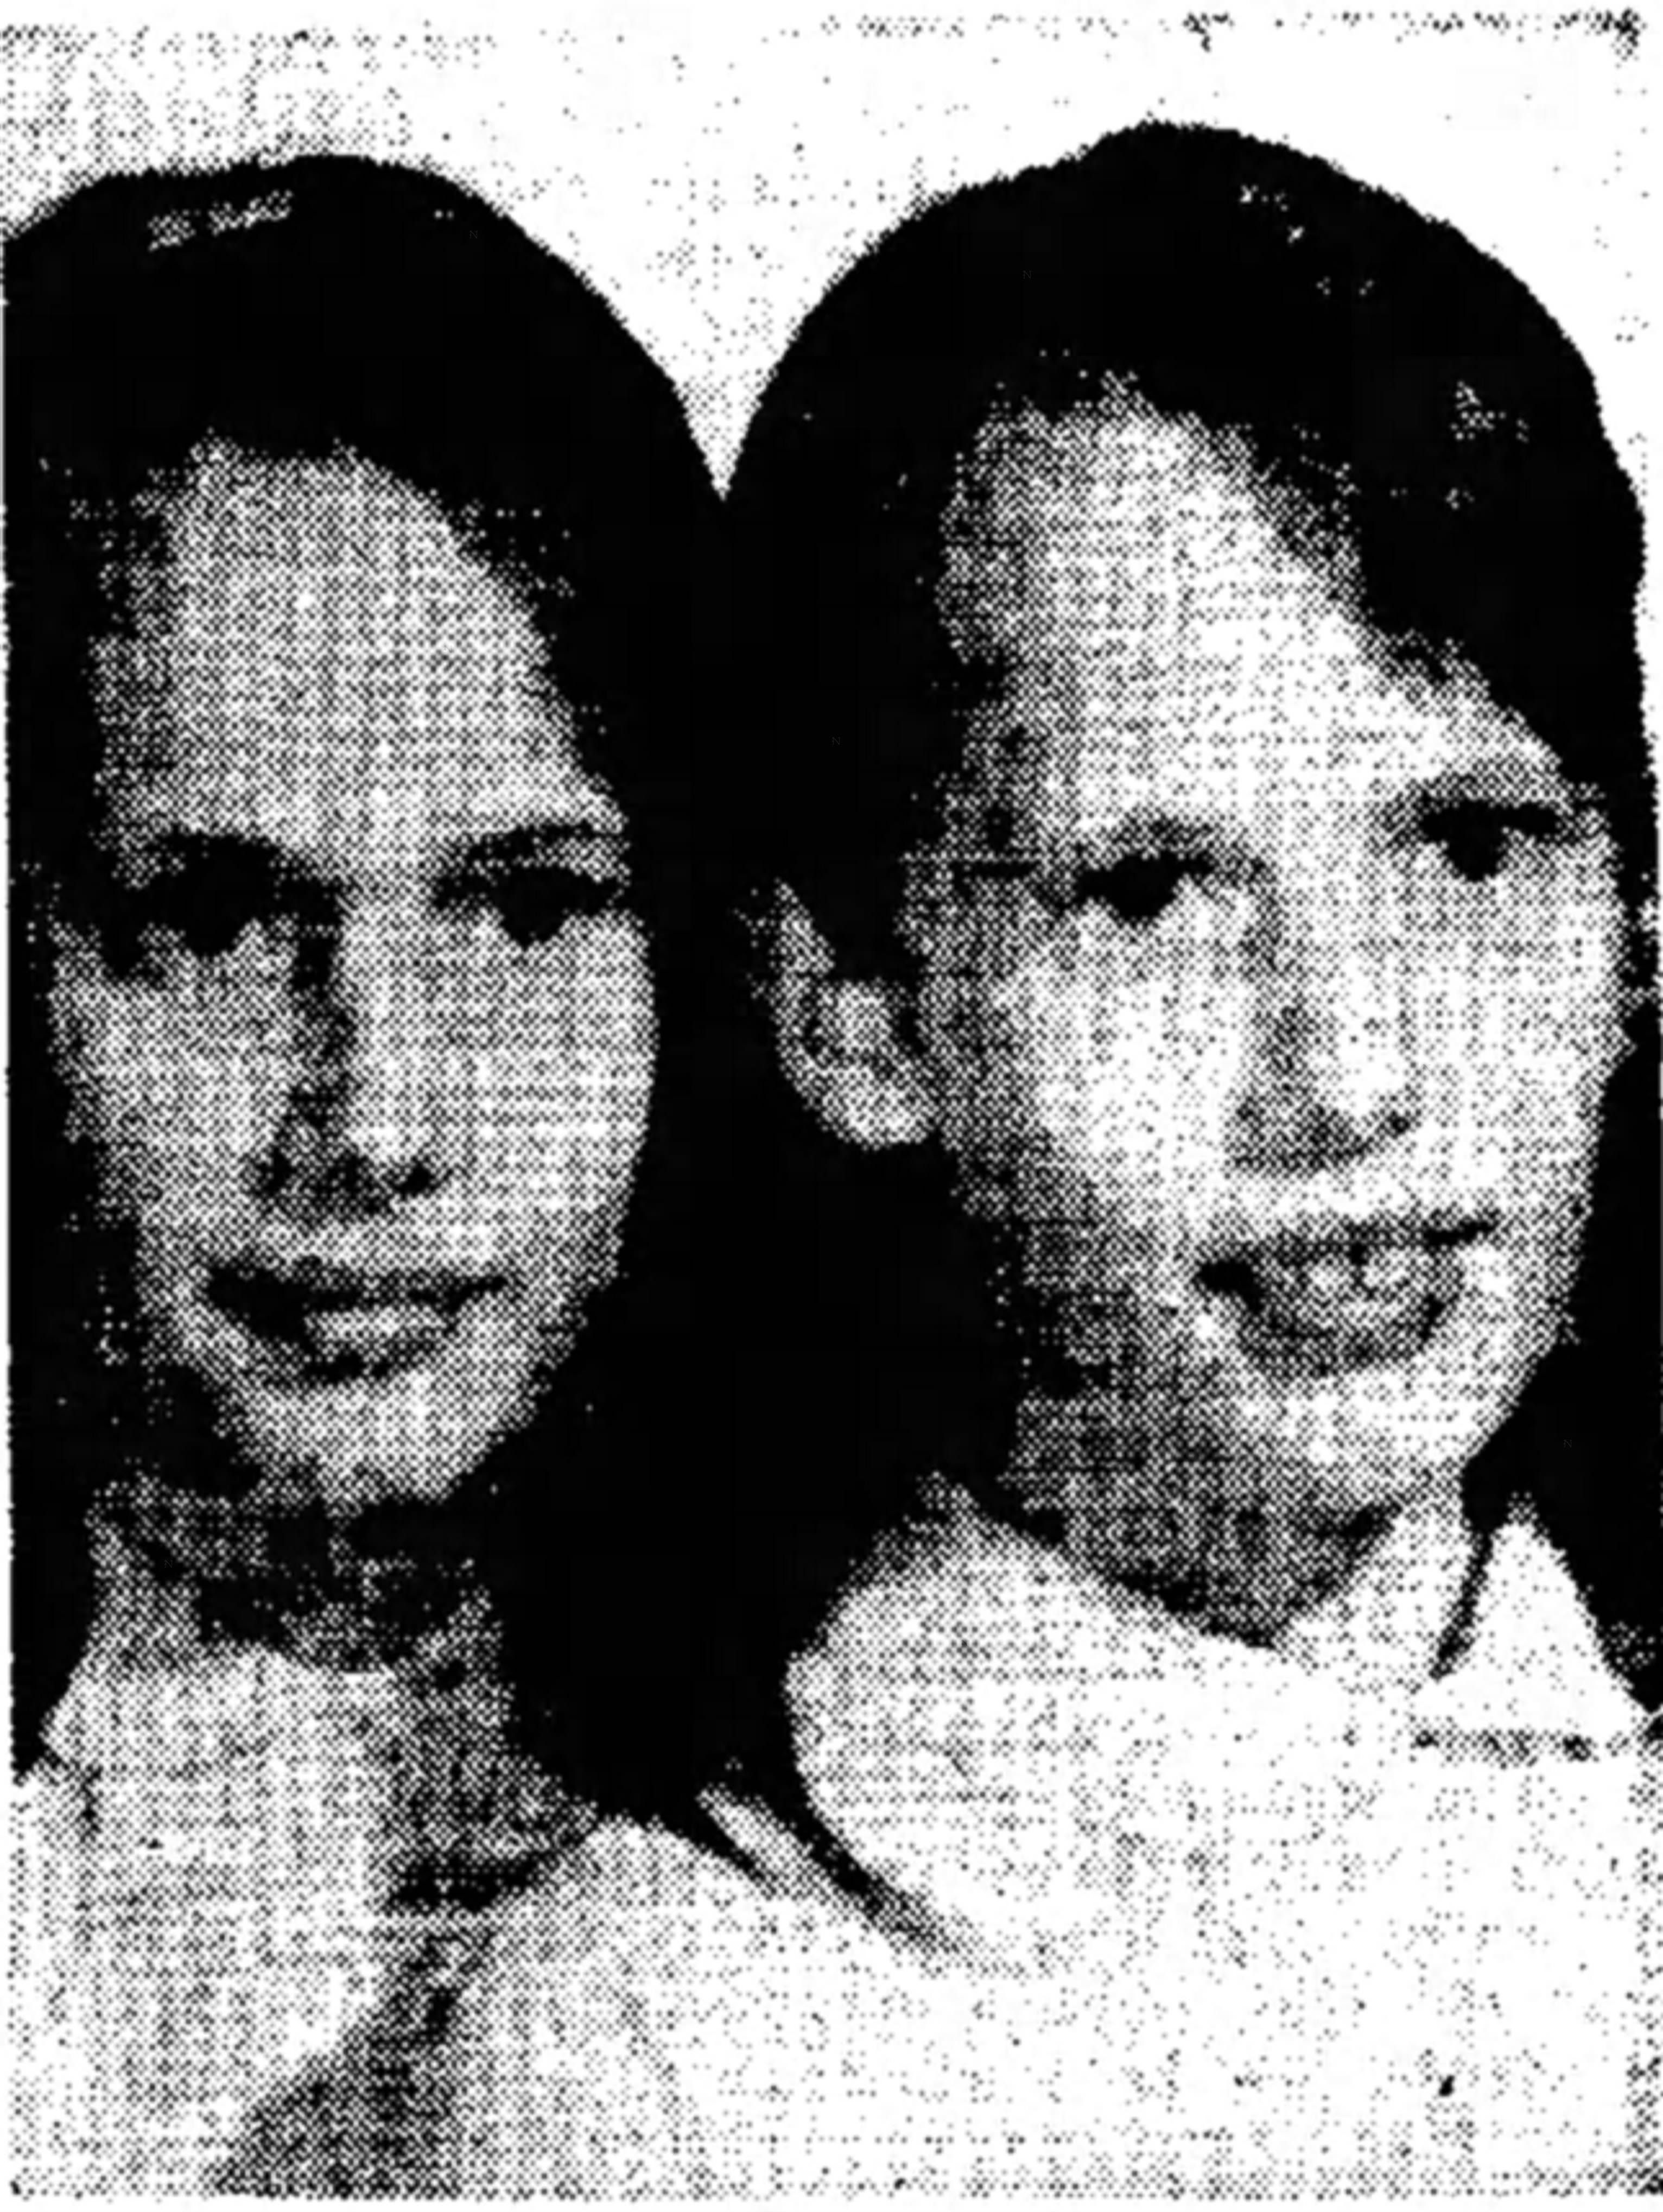 Peggy Reber (right) and her twin sister Kathryn, pictured in the Lebanon Daily News on May 28, 1968.